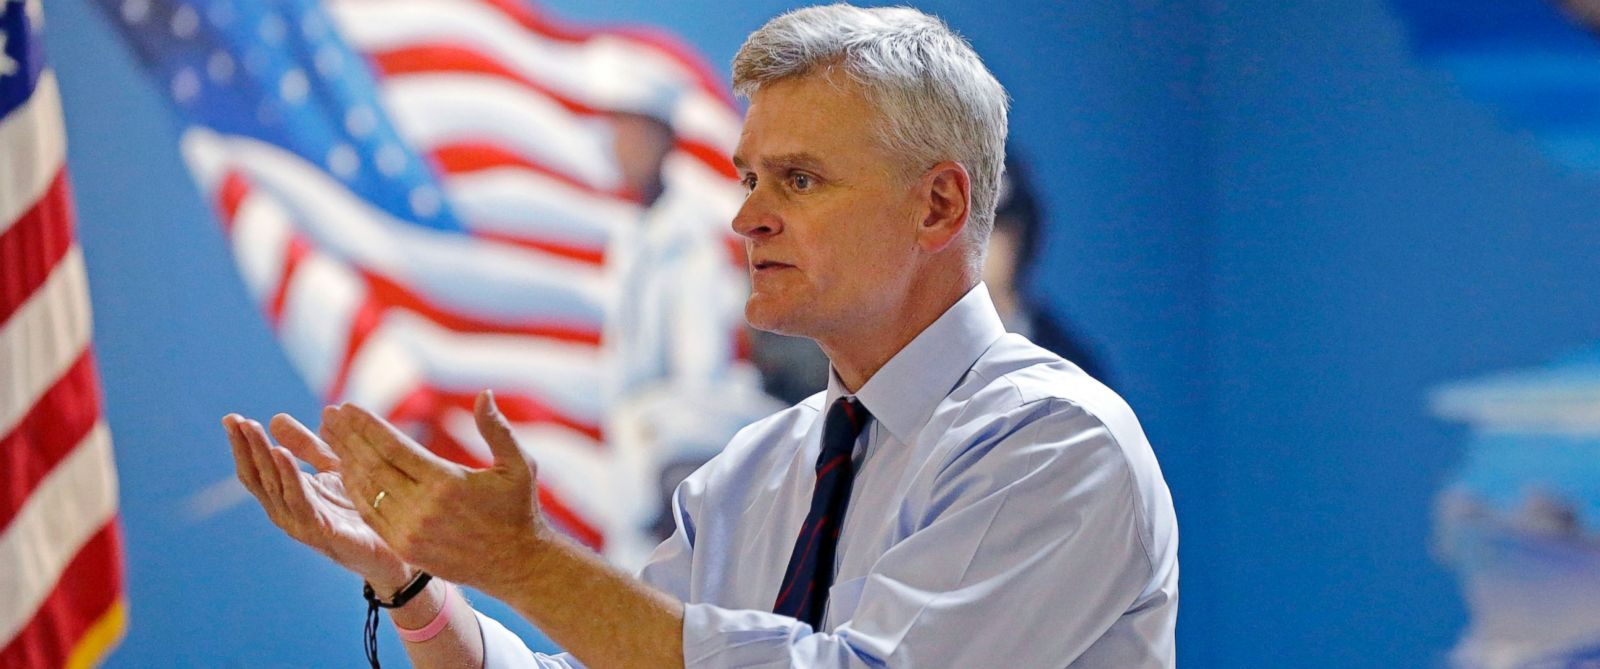 PHOTO: Senate candidate, Rep. Bill Cassidy, R-La., speaks at a campaign stop at VFW Post 5951in Bossier City, La., Monday, Oct. 13, 2014.